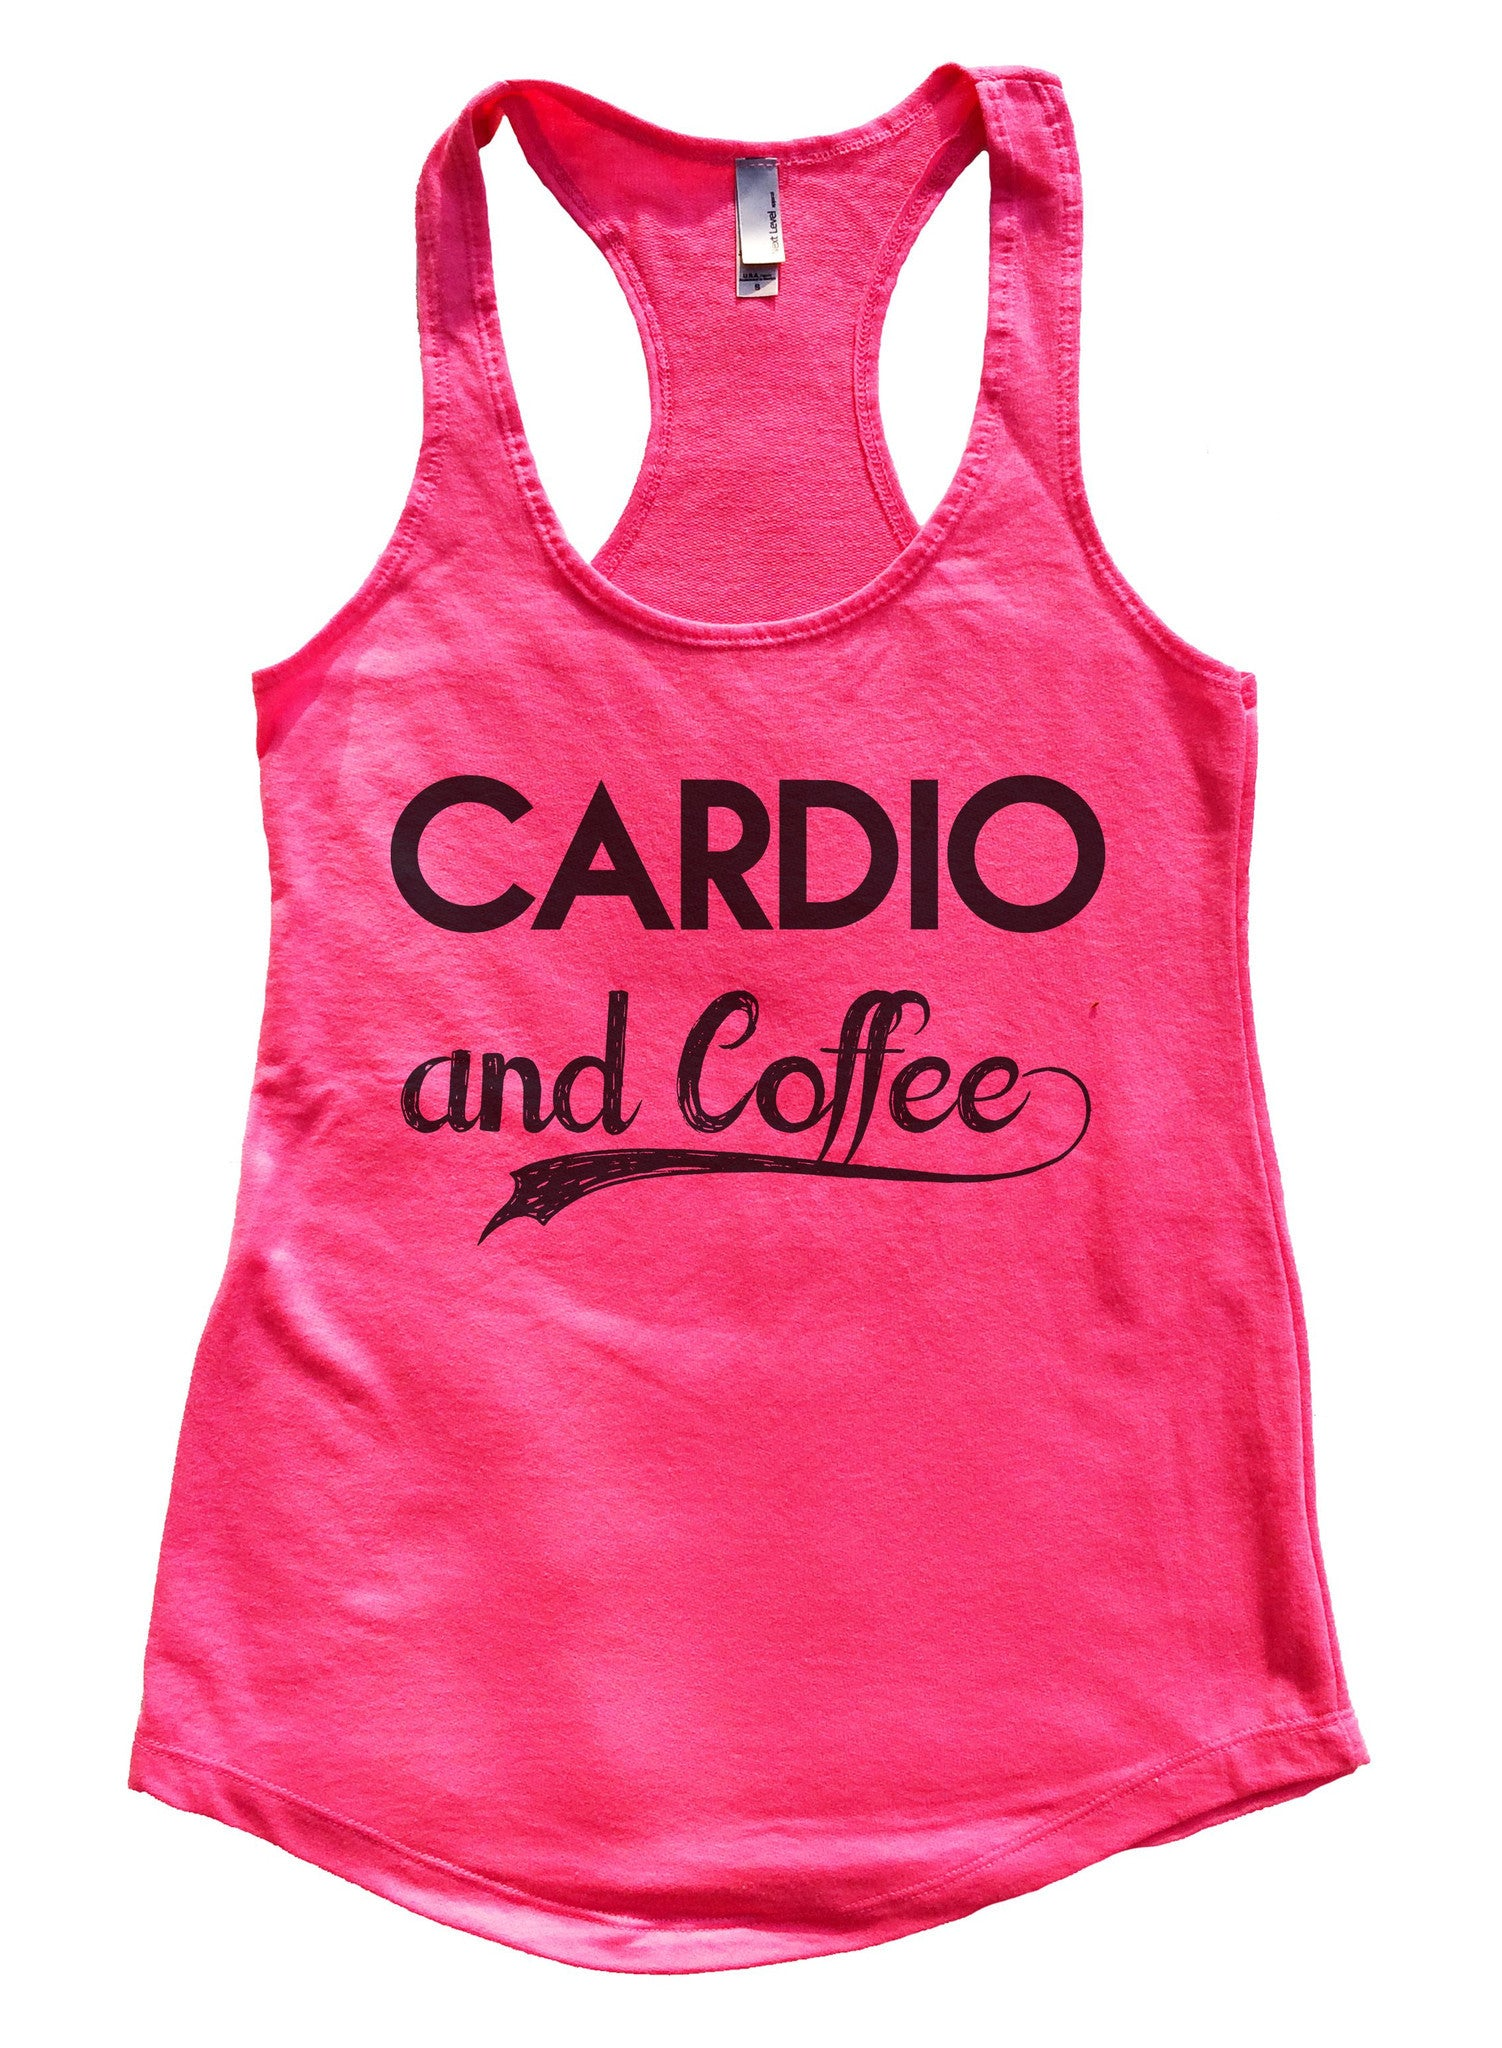 Cardio And Coffee Womens Workout Tank Top F797 - Funny Shirts Tank Tops Burnouts and Triblends  - 5